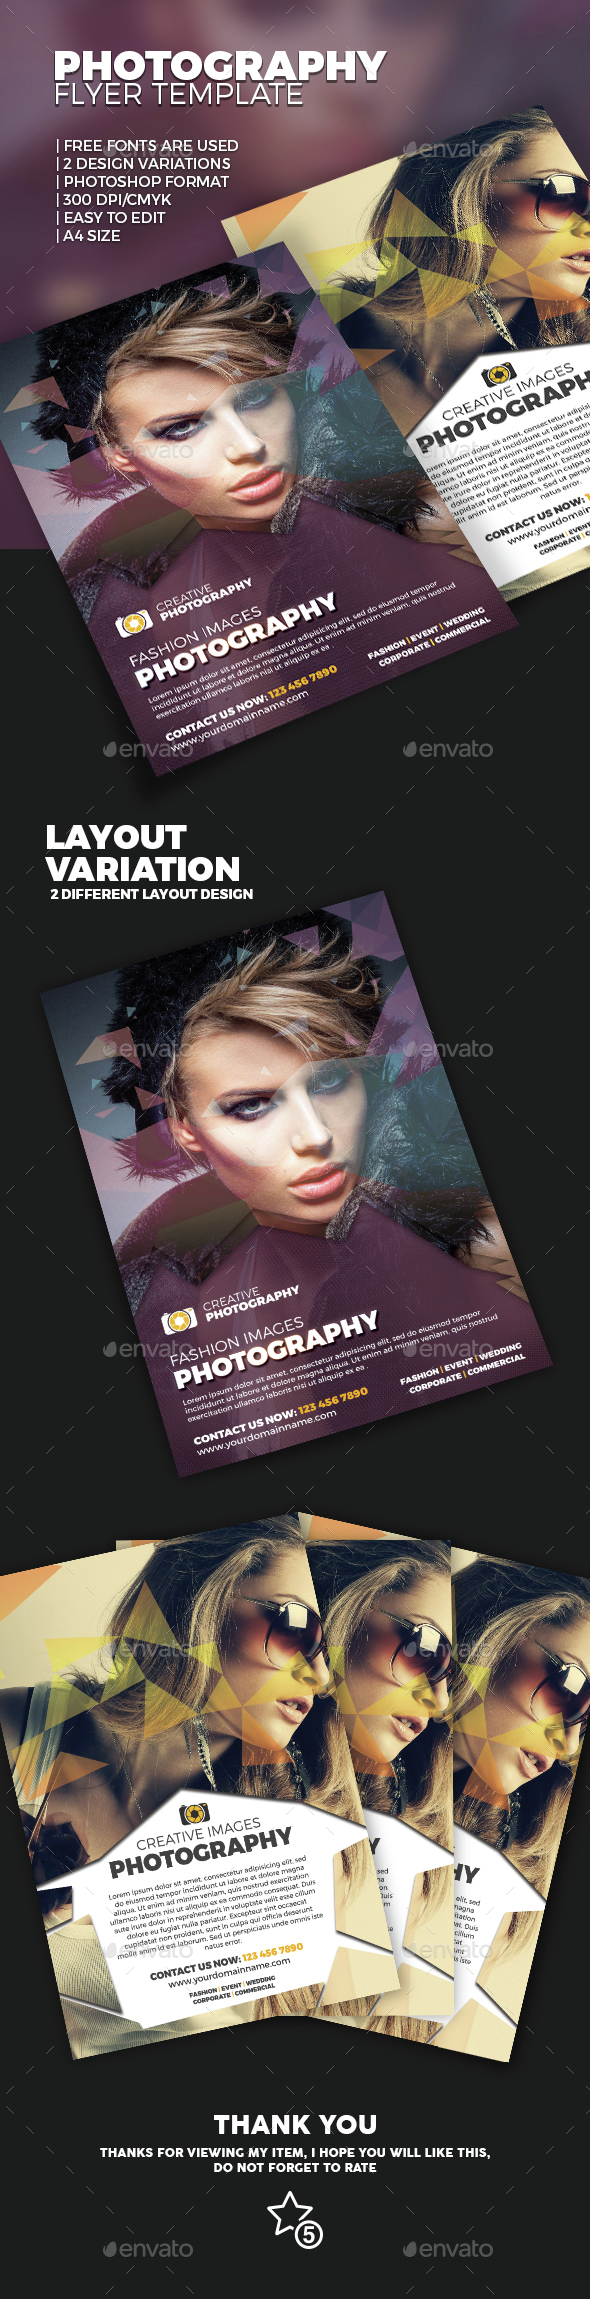 Photography Flyer - Commerce Flyers